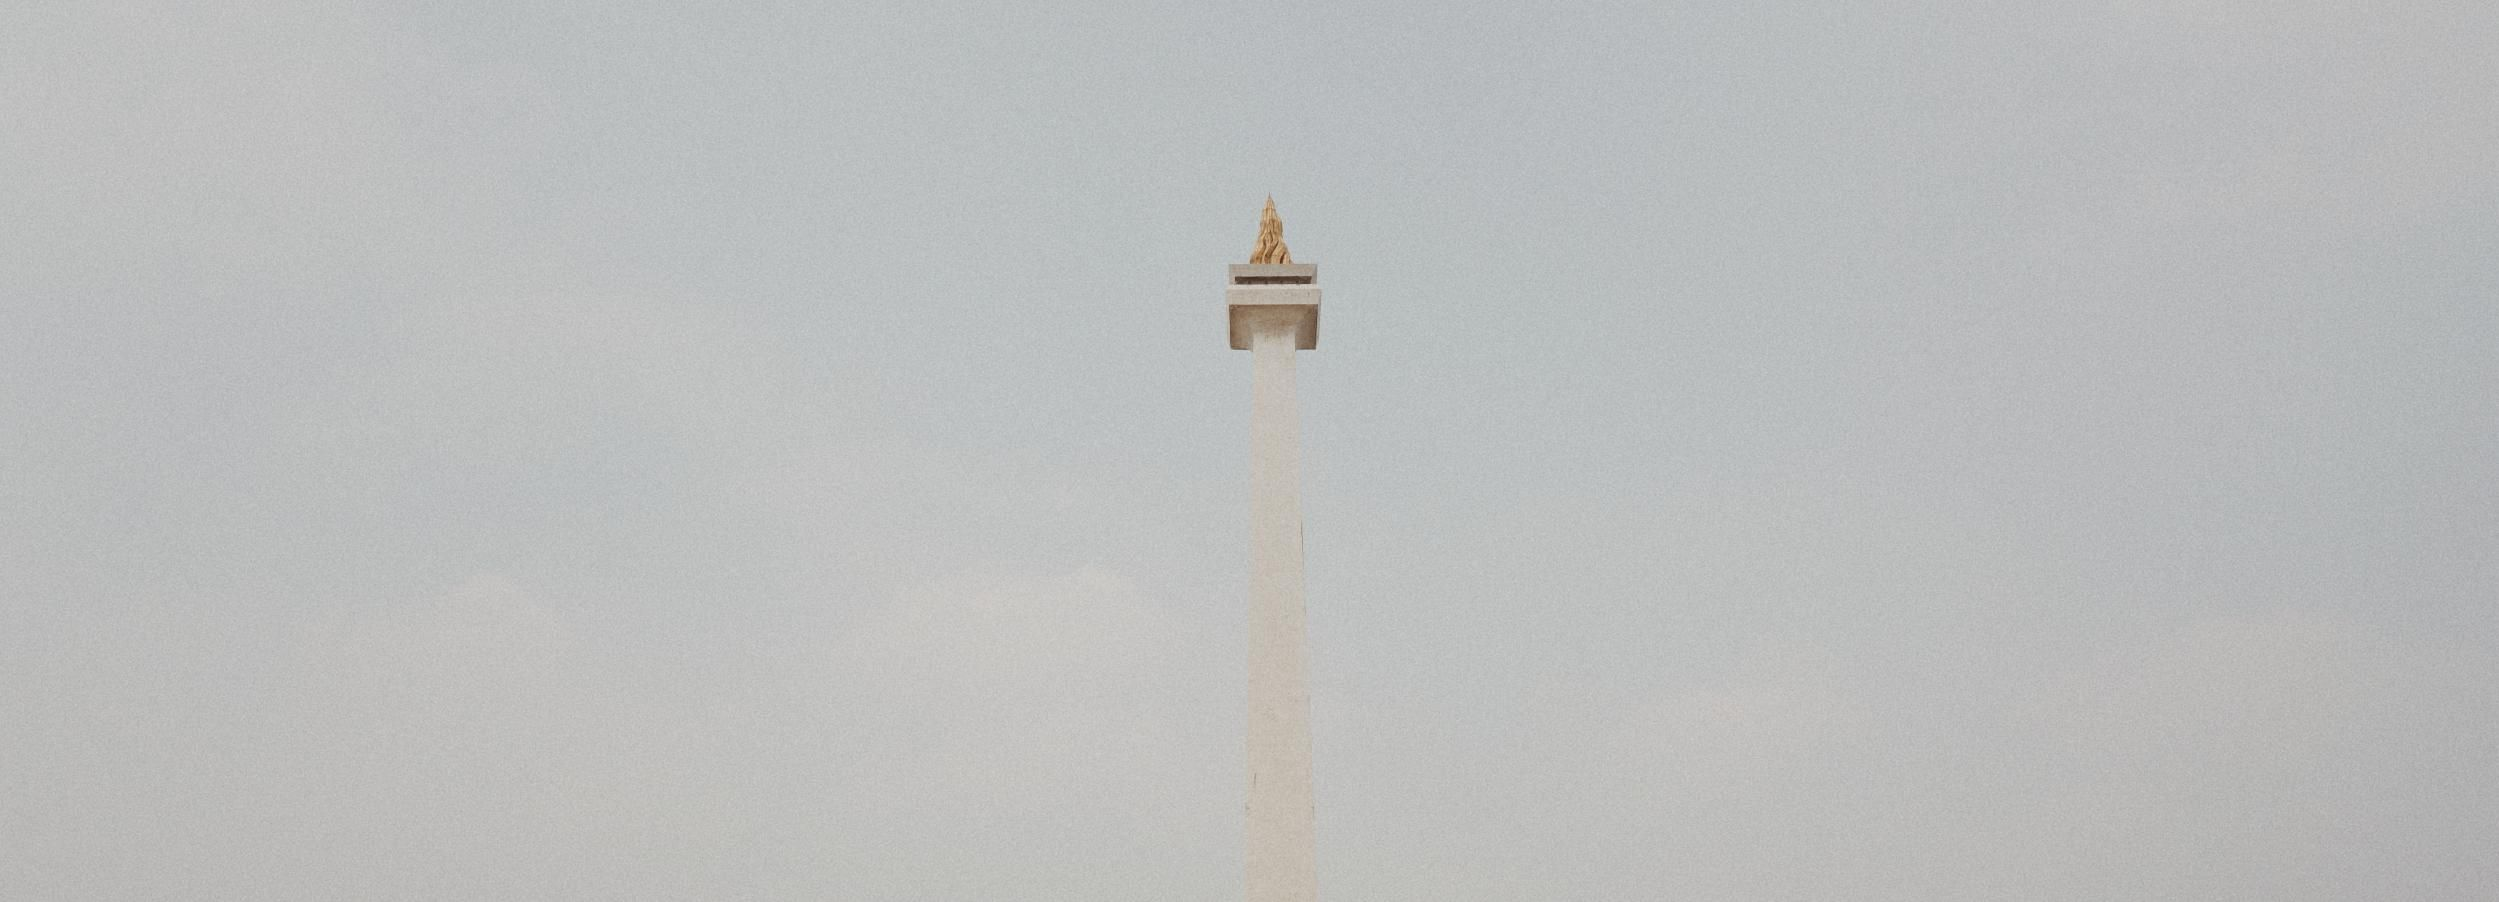 Jakarta: National Monument and Miniature Indonesia Tour